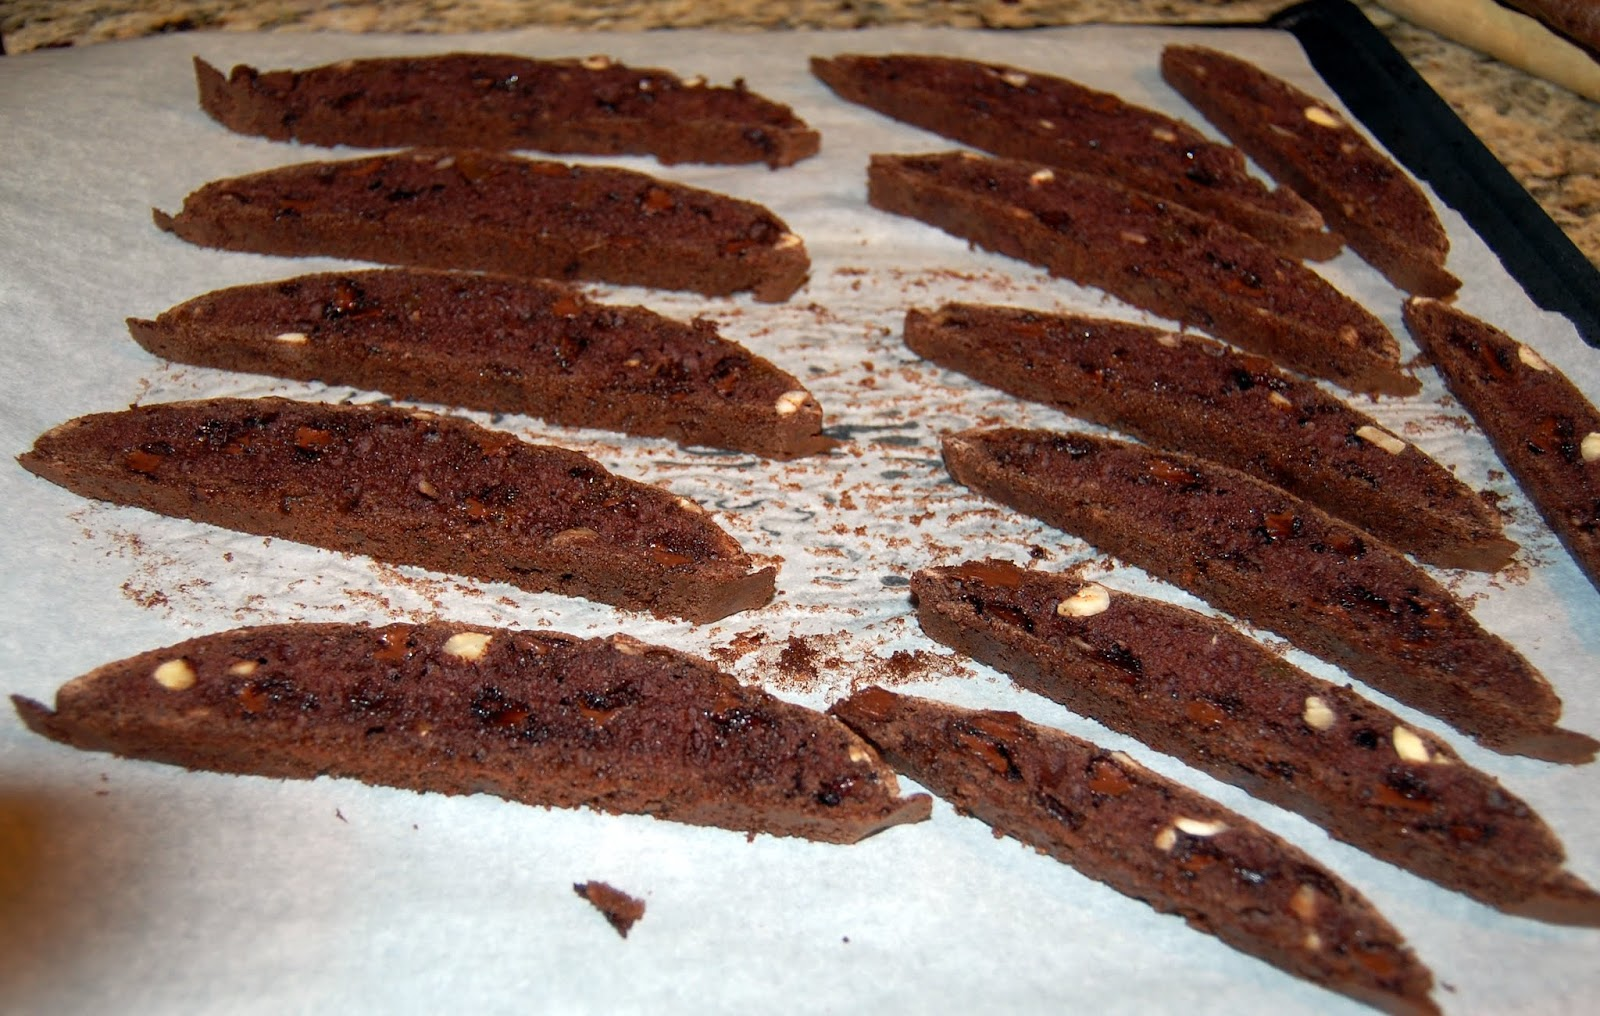 Eat What's On Your Plate: Chocolate Hazelnut Biscotti